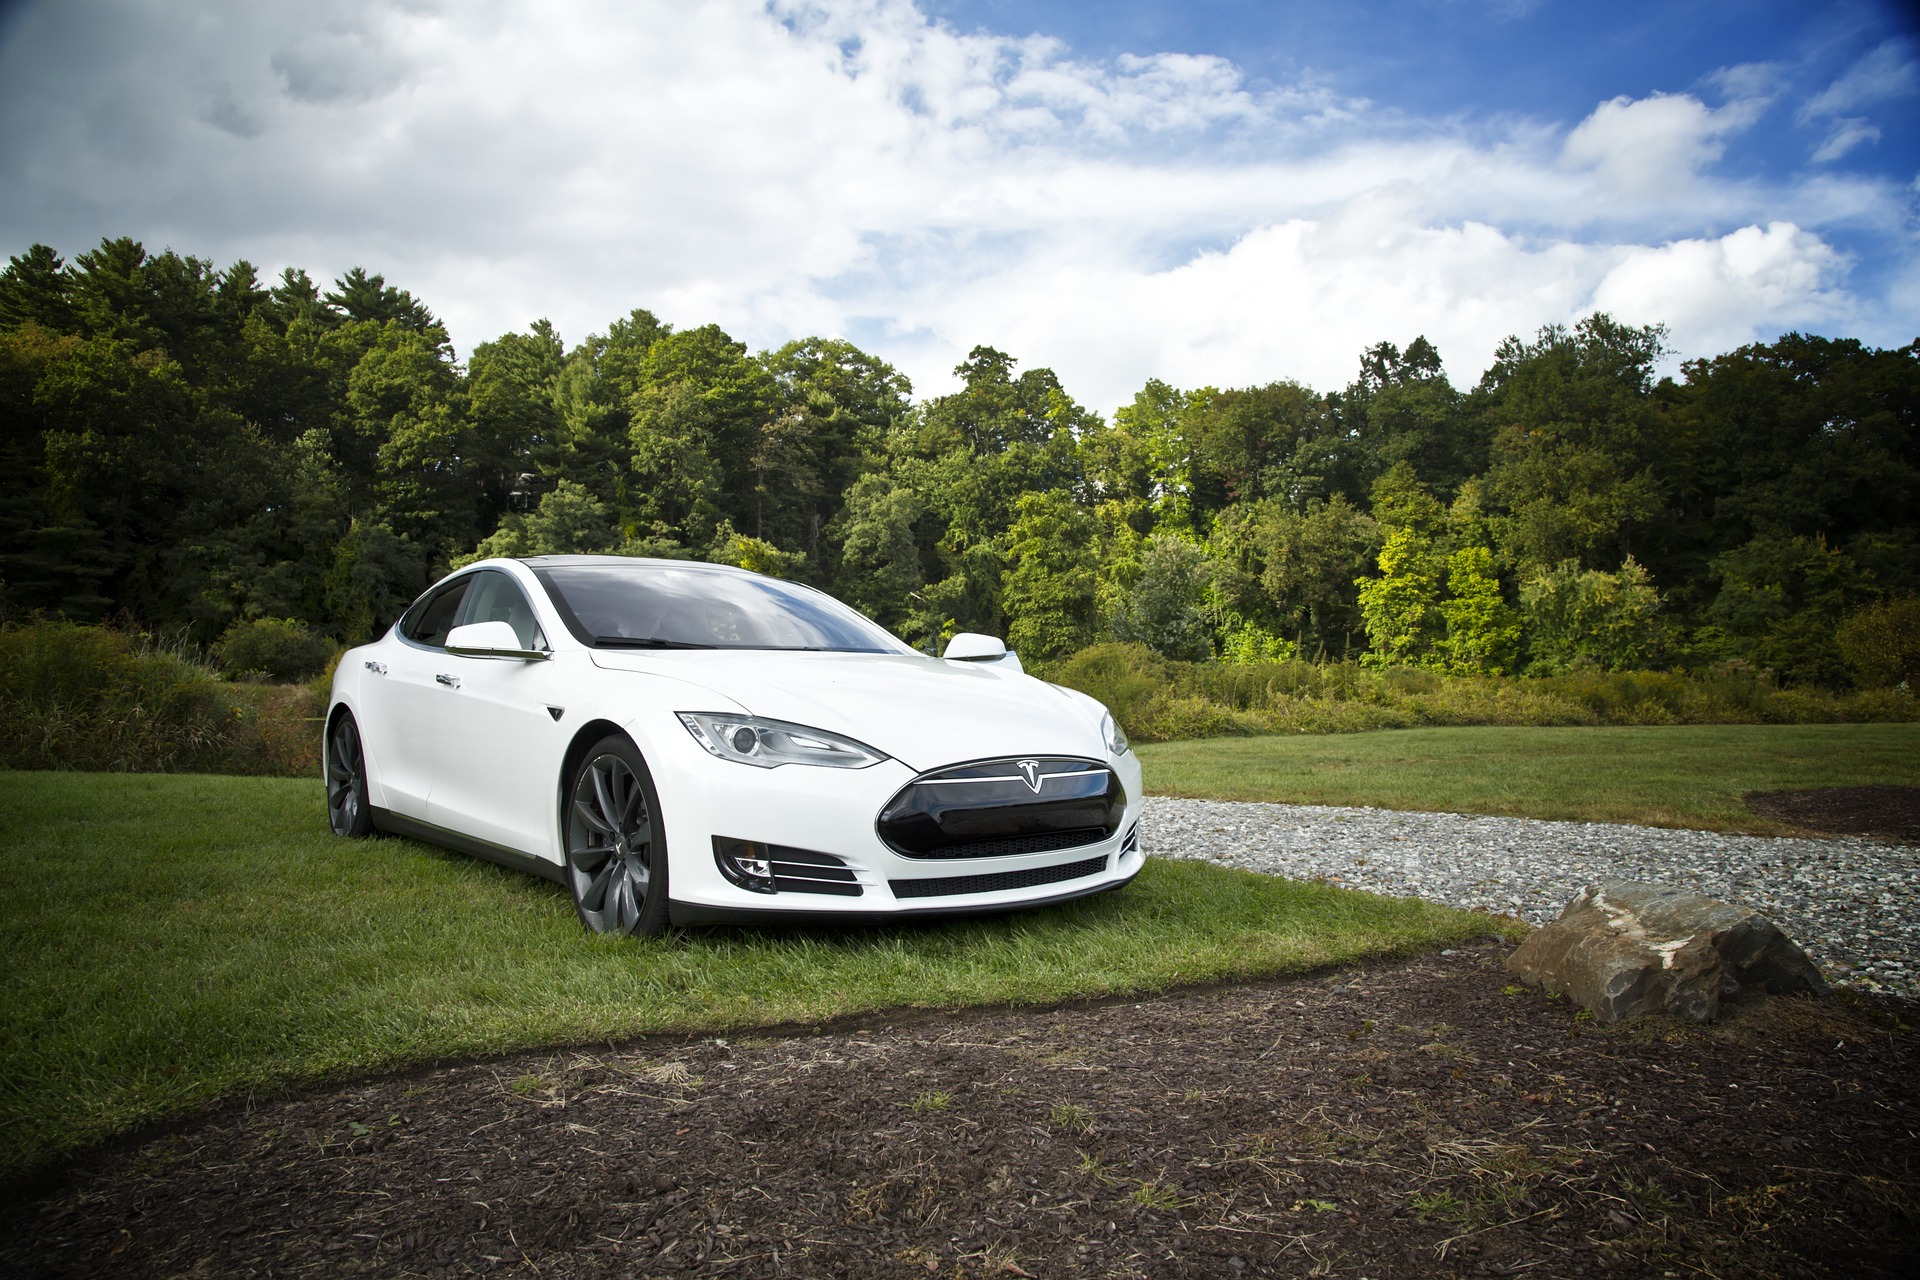 Tesla car sitting on the lawn of a driveway.